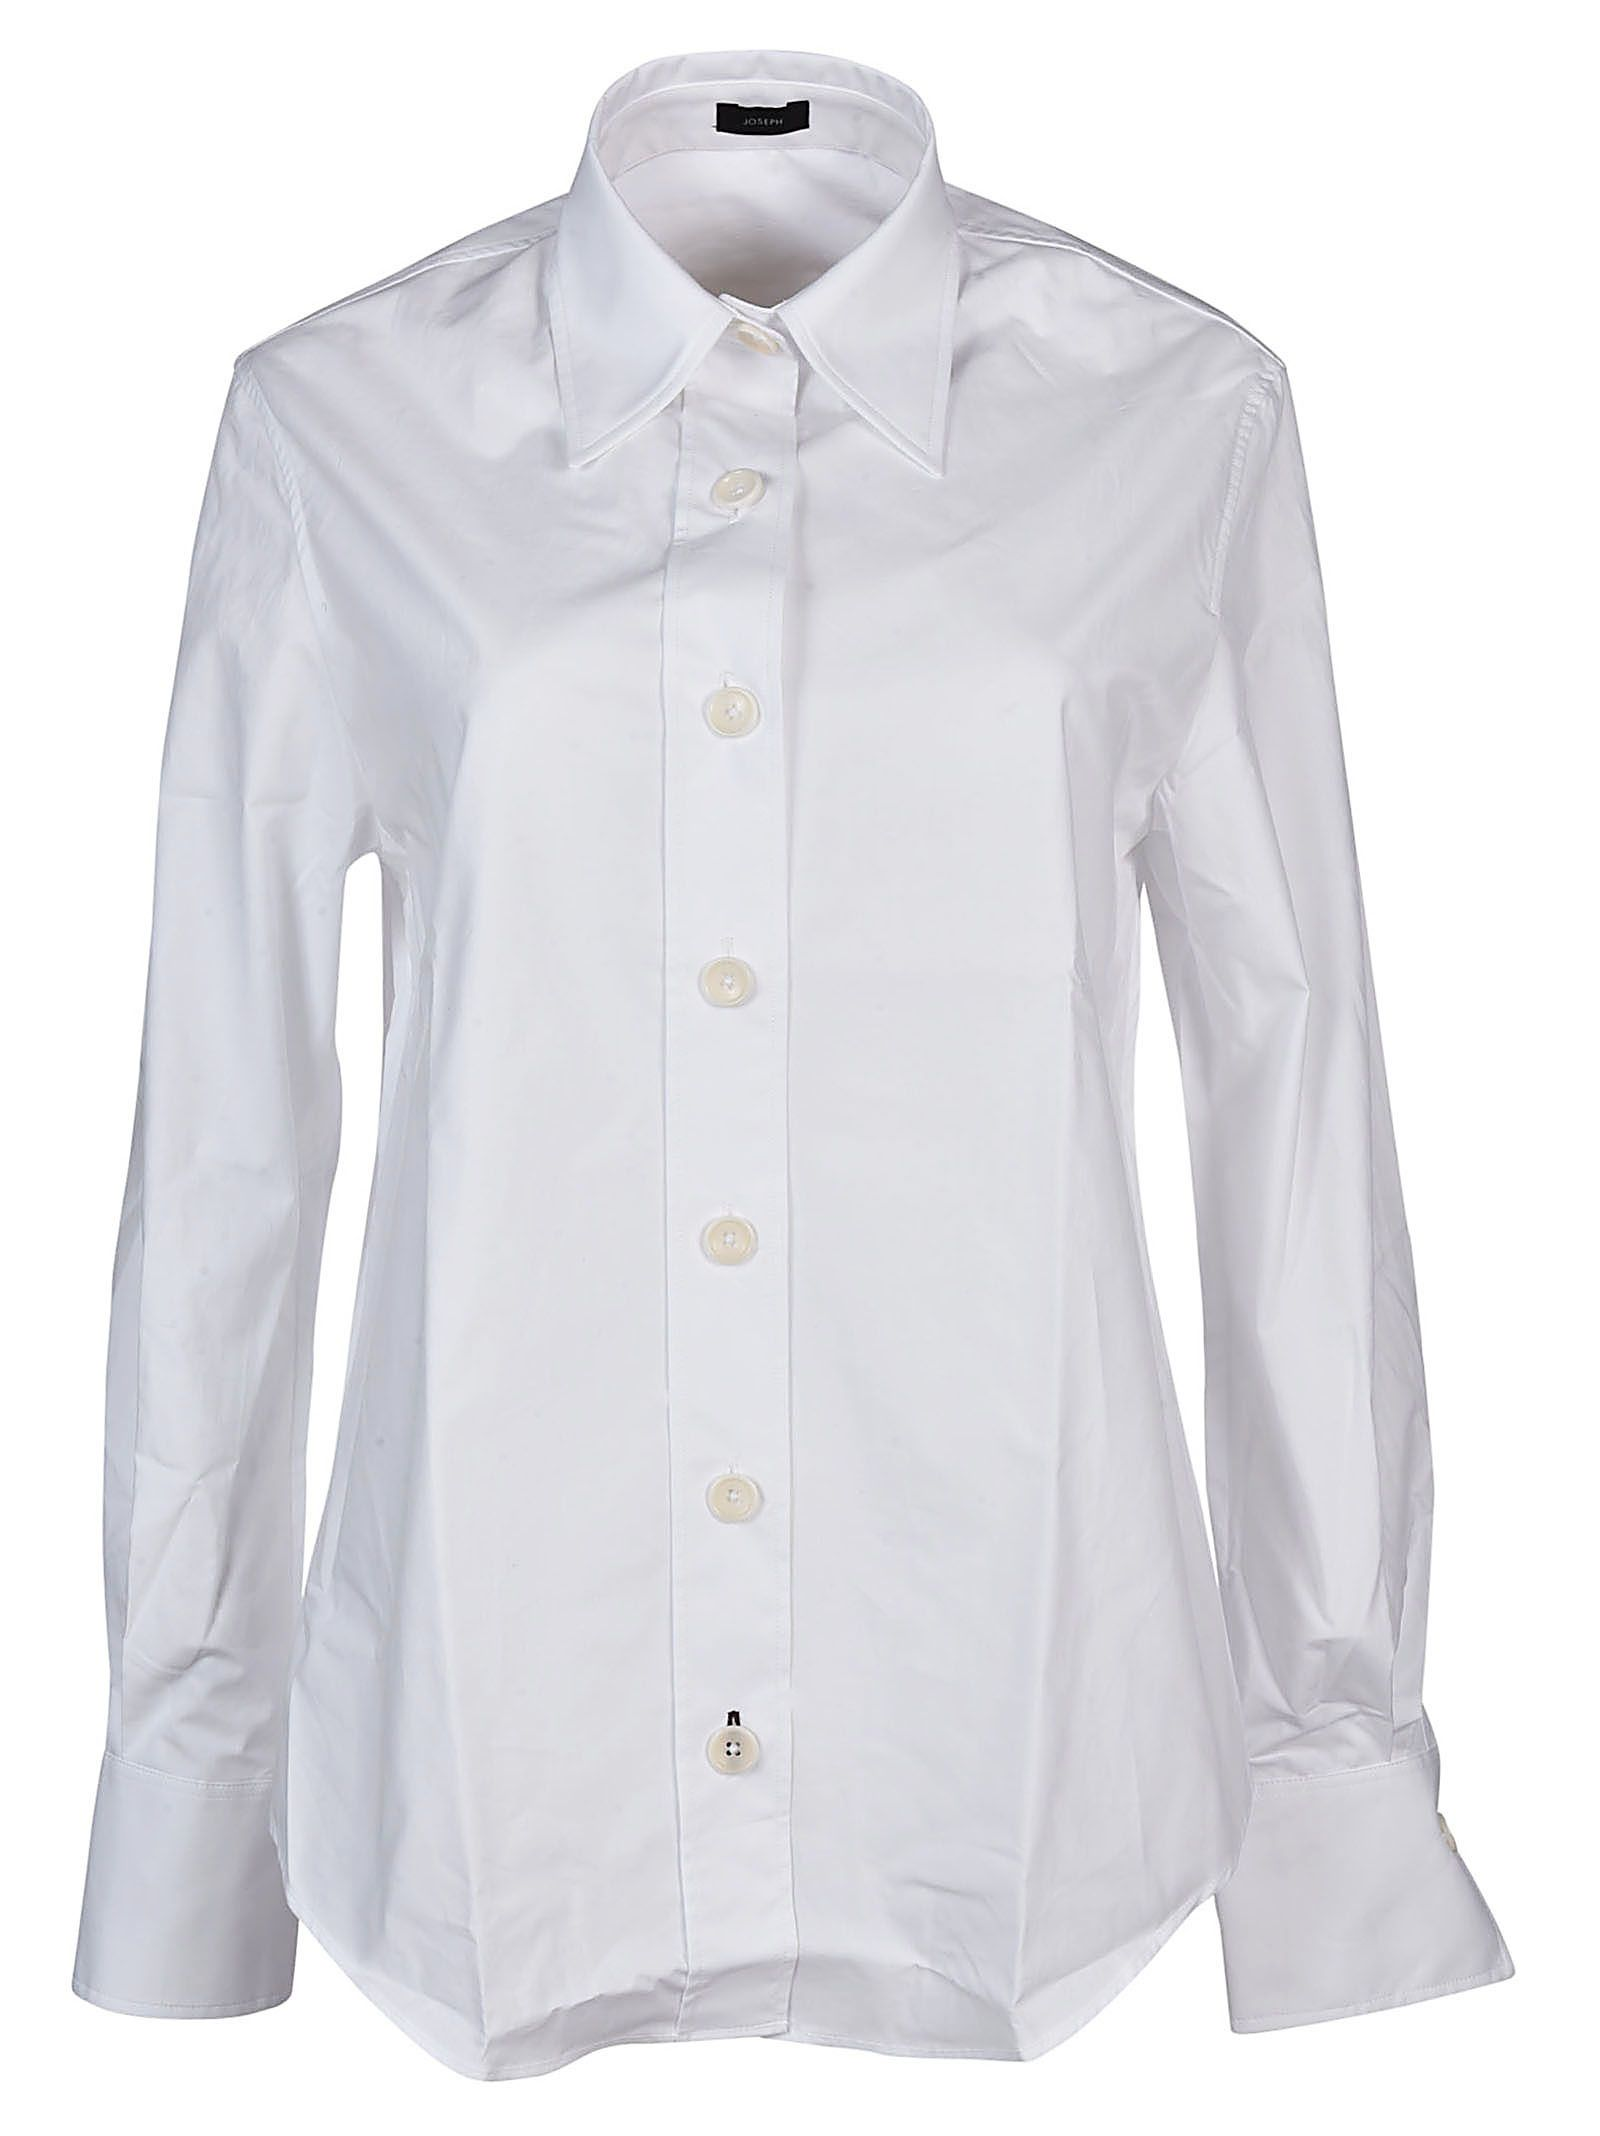 Cheap Sale Amazon Discount Codes Really Cheap White Garconne Poplin Shirt Joseph Cheap The Cheapest Outlet Best Wholesale tJxmD